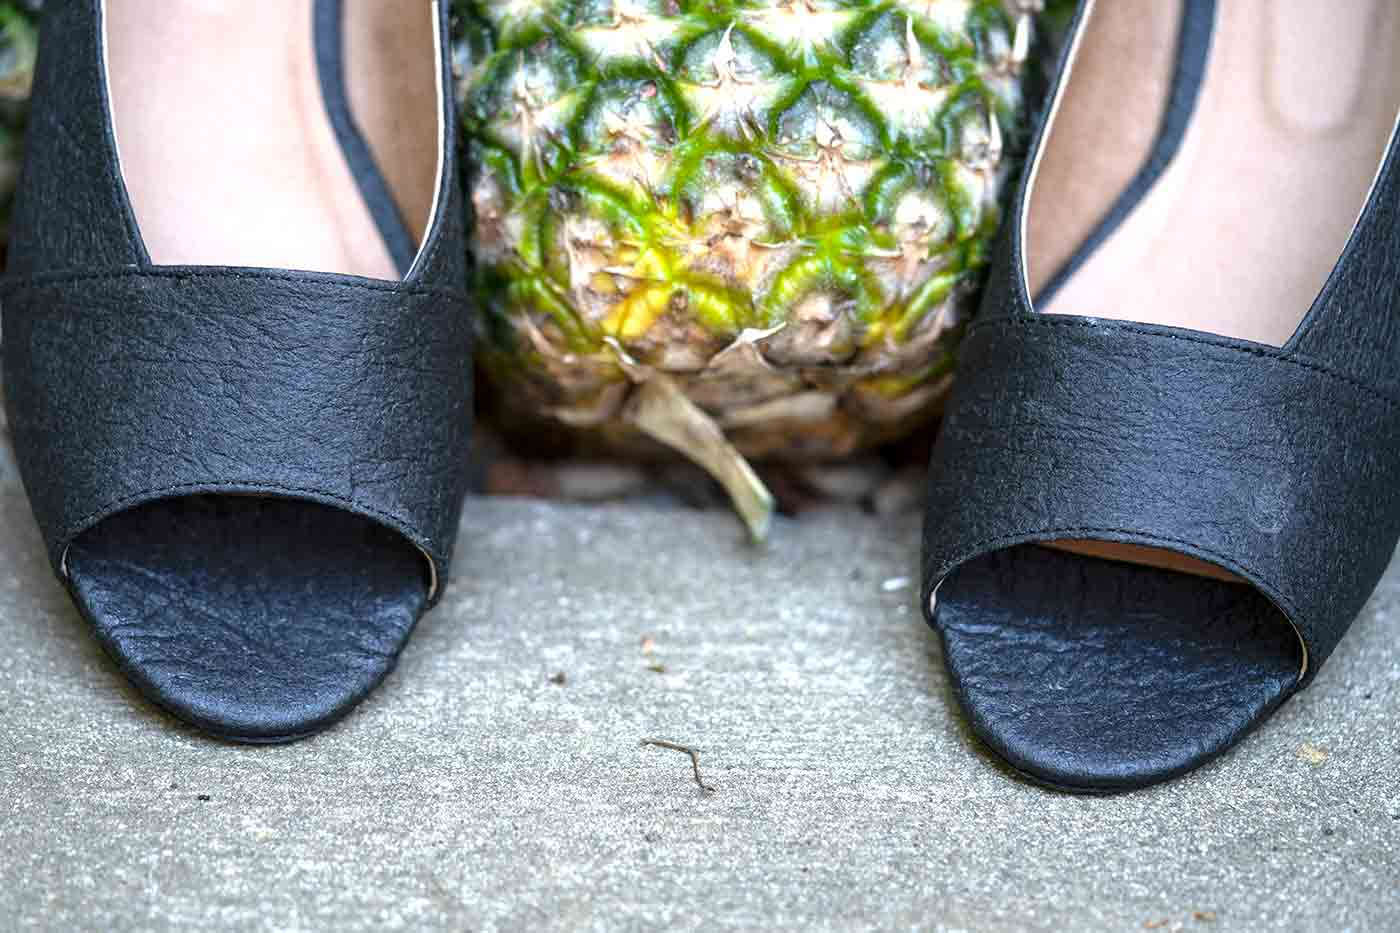 Pinatex shoes from Nae online shown with a pineapple used to make the vegan leather